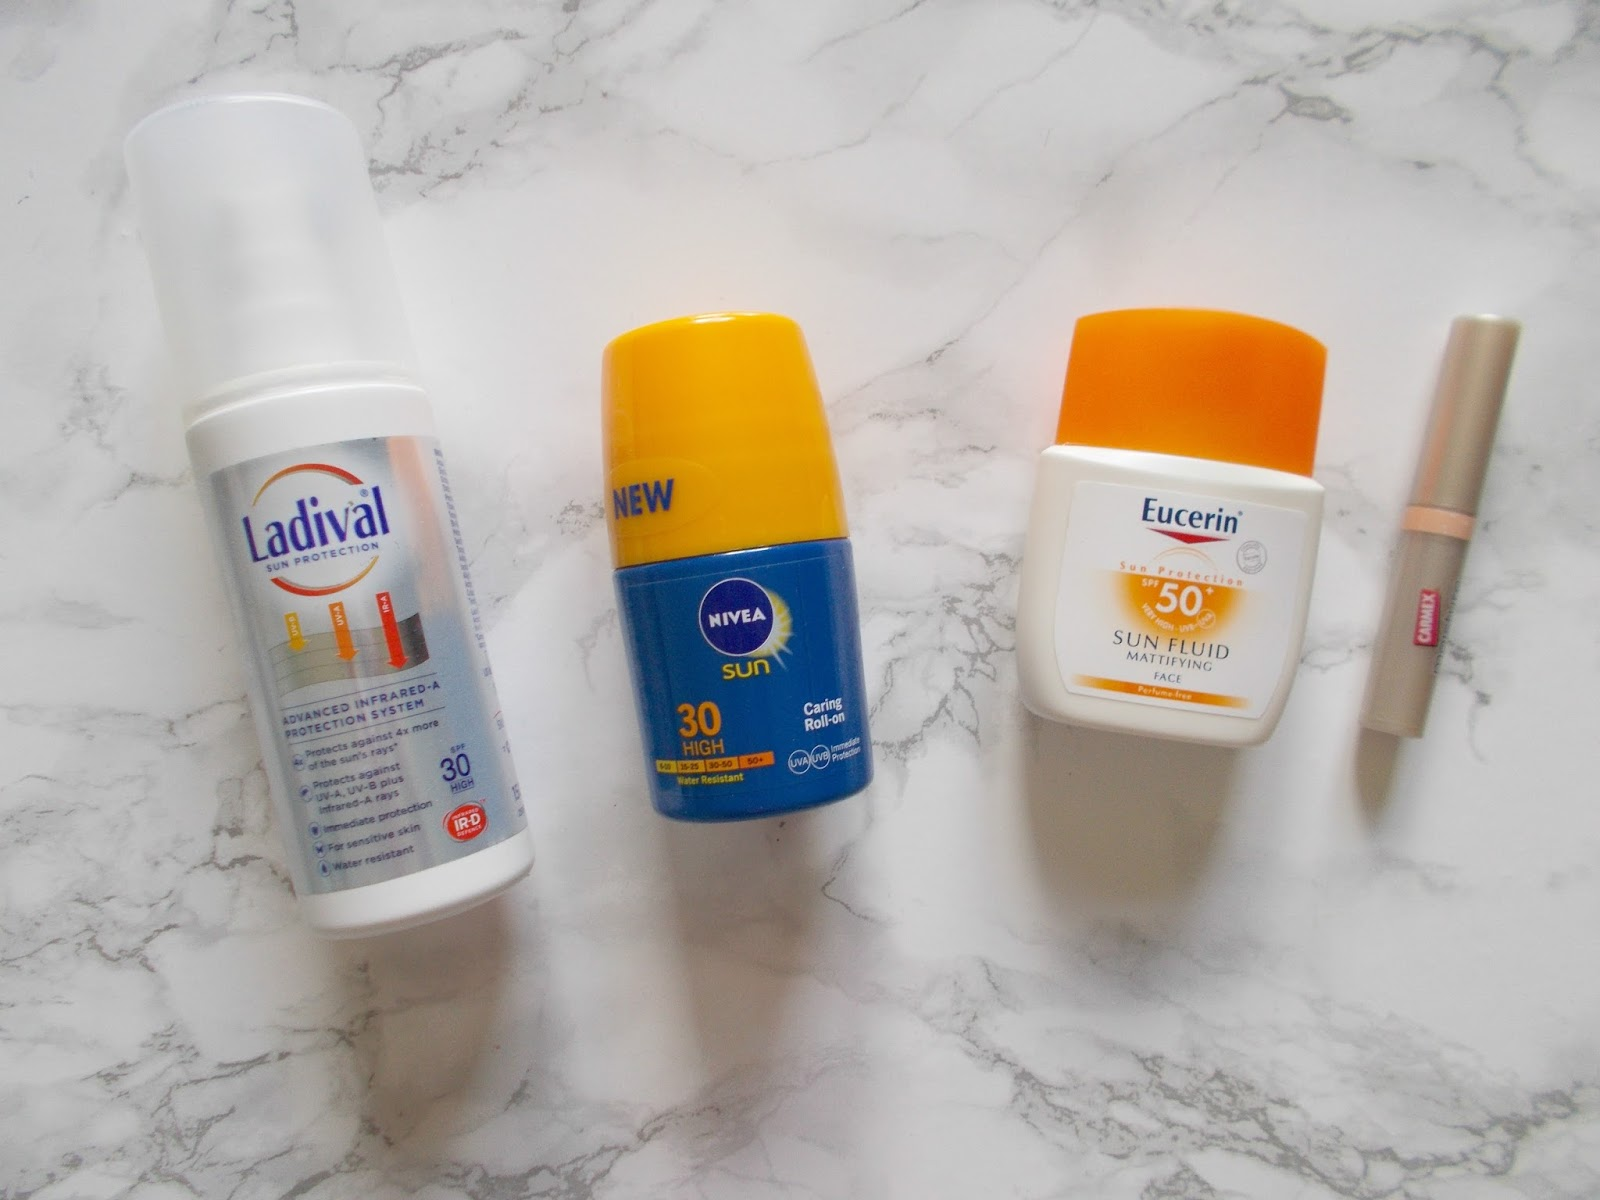 sunscreen ladival spf eucerin mattifying fluid nivea caring roll on carmex moisture plus lip balm